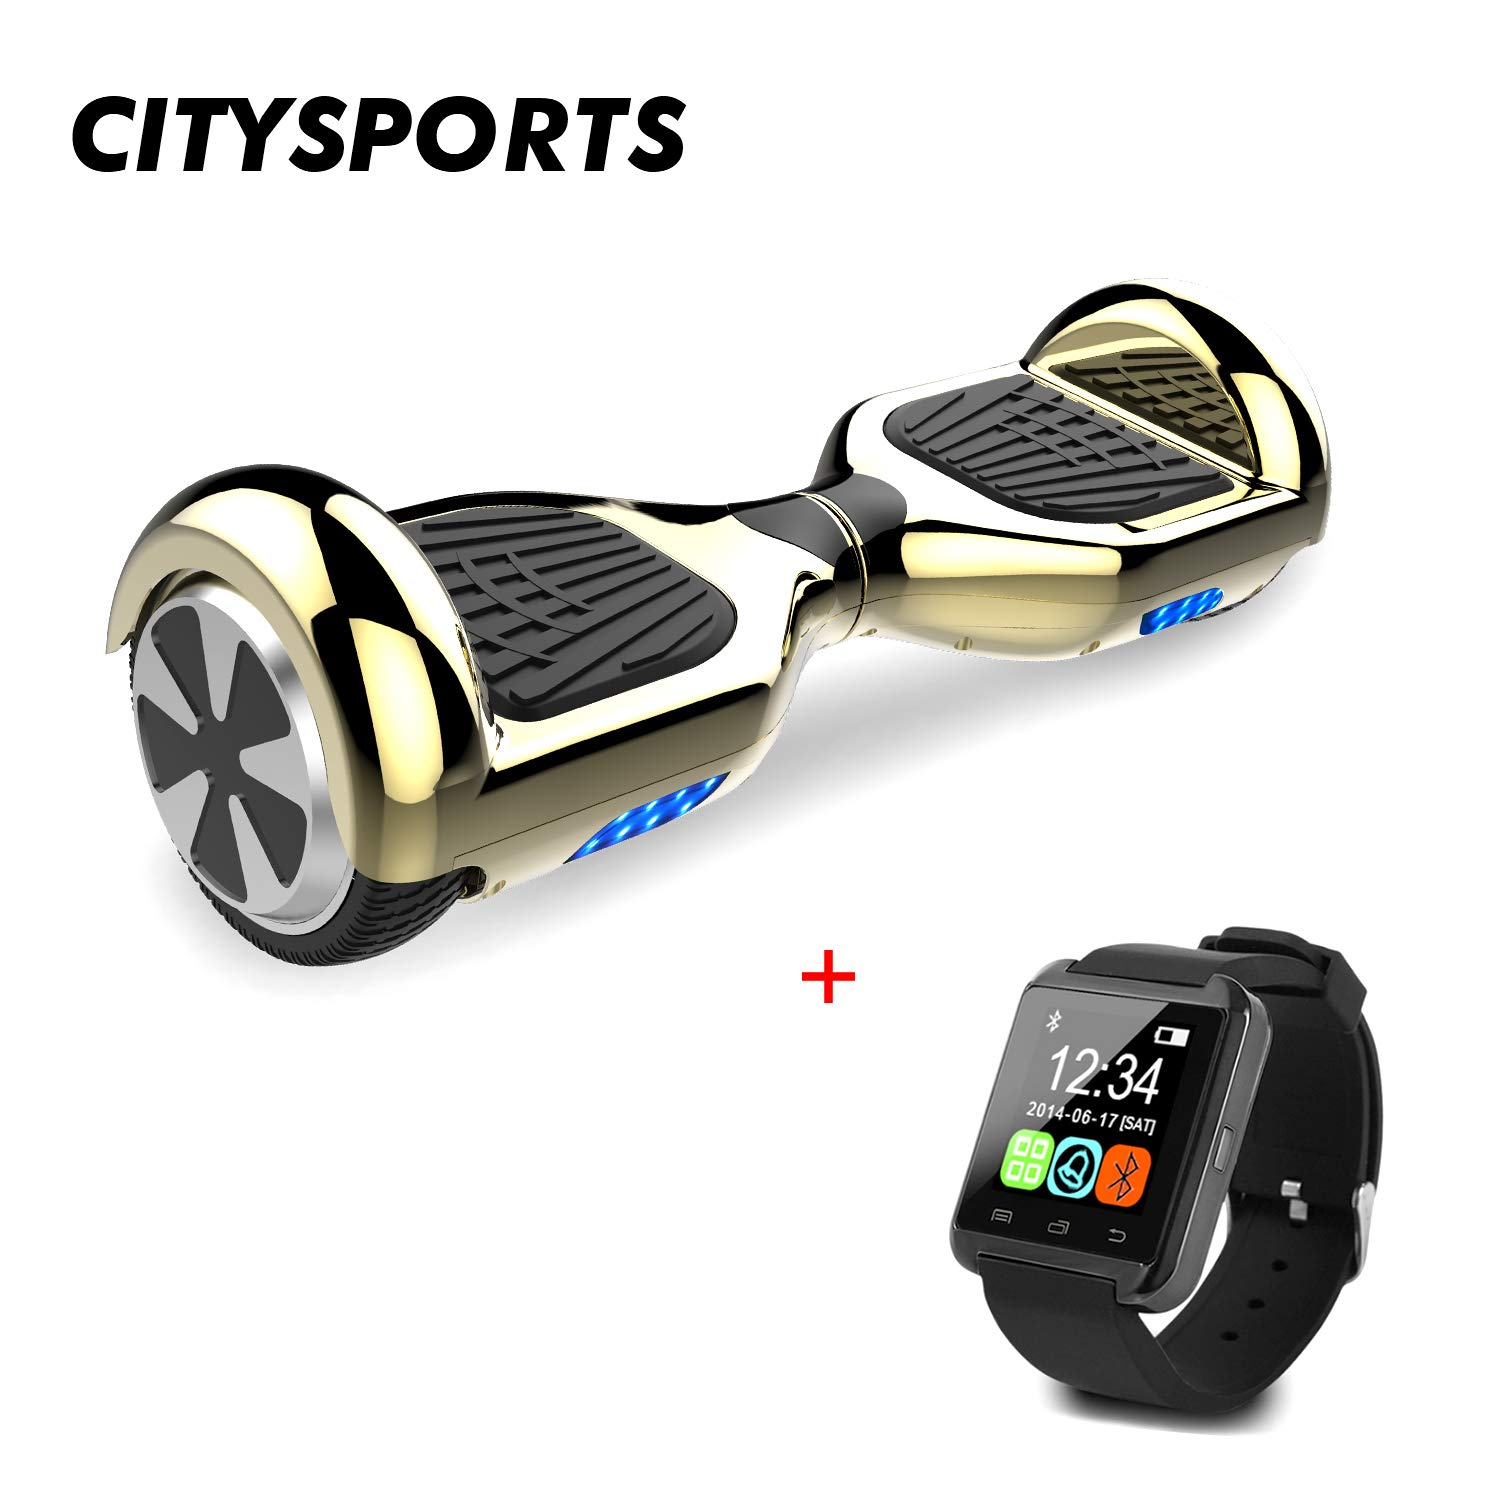 CITYSPORTS Hoverboard 6.5 Pulgadas, Balance Board Patinete Eléctrico 2x350W LED